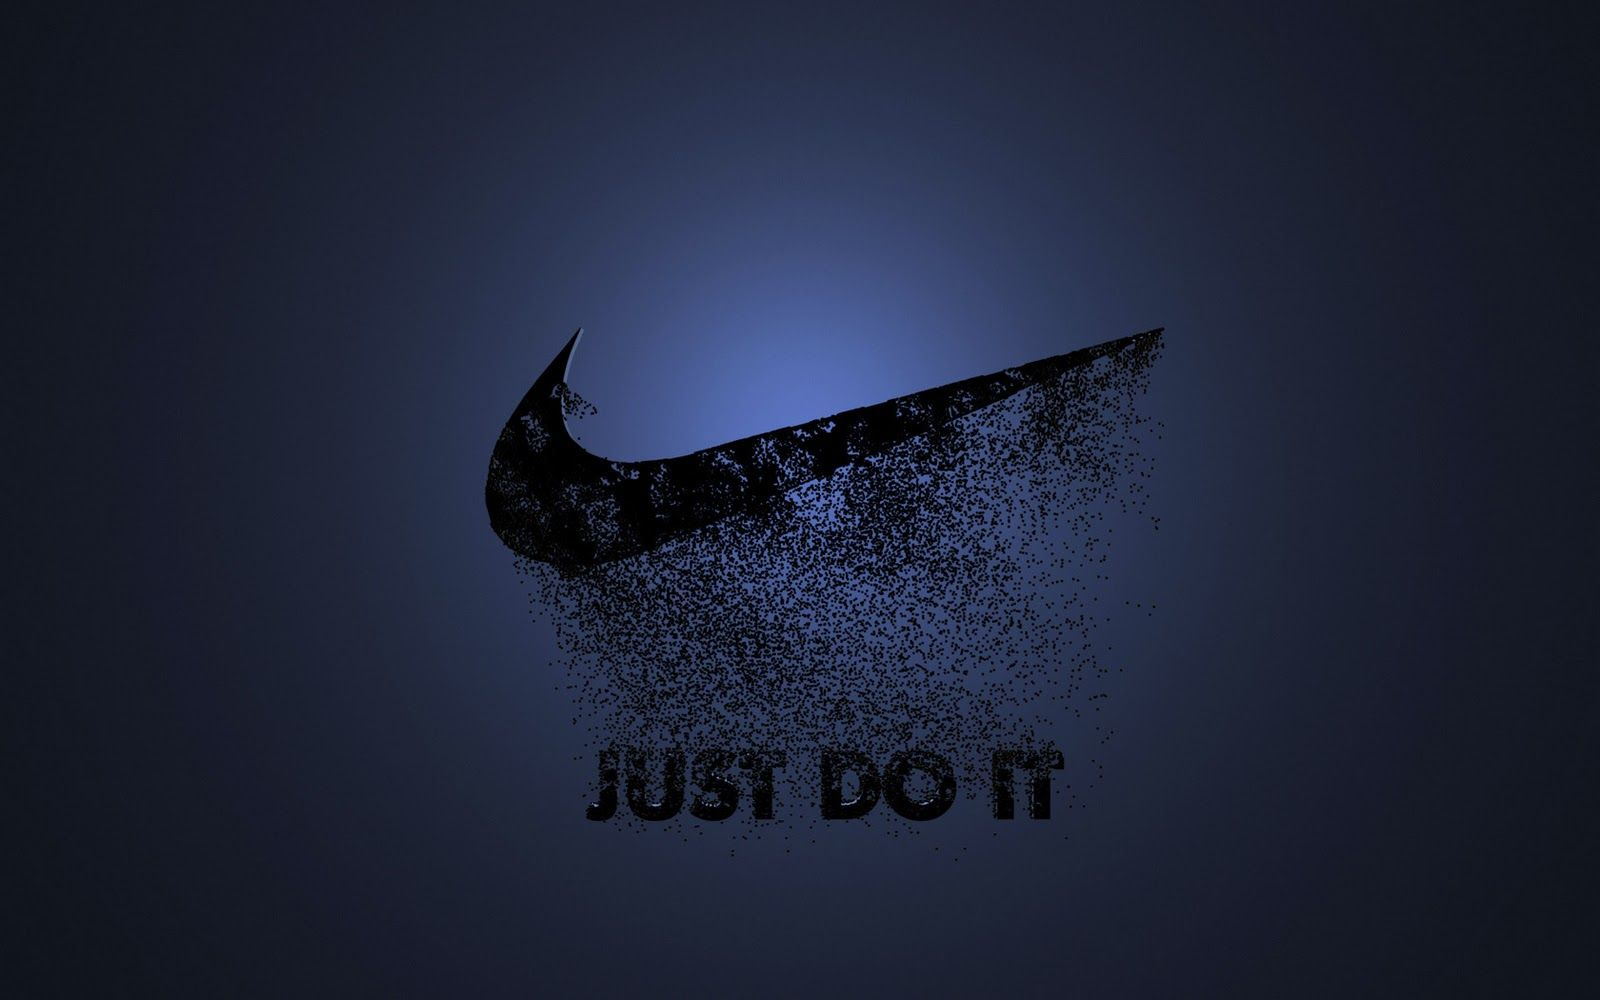 Nike Just Do It Wallpapers Wide Sdeerwallpaper